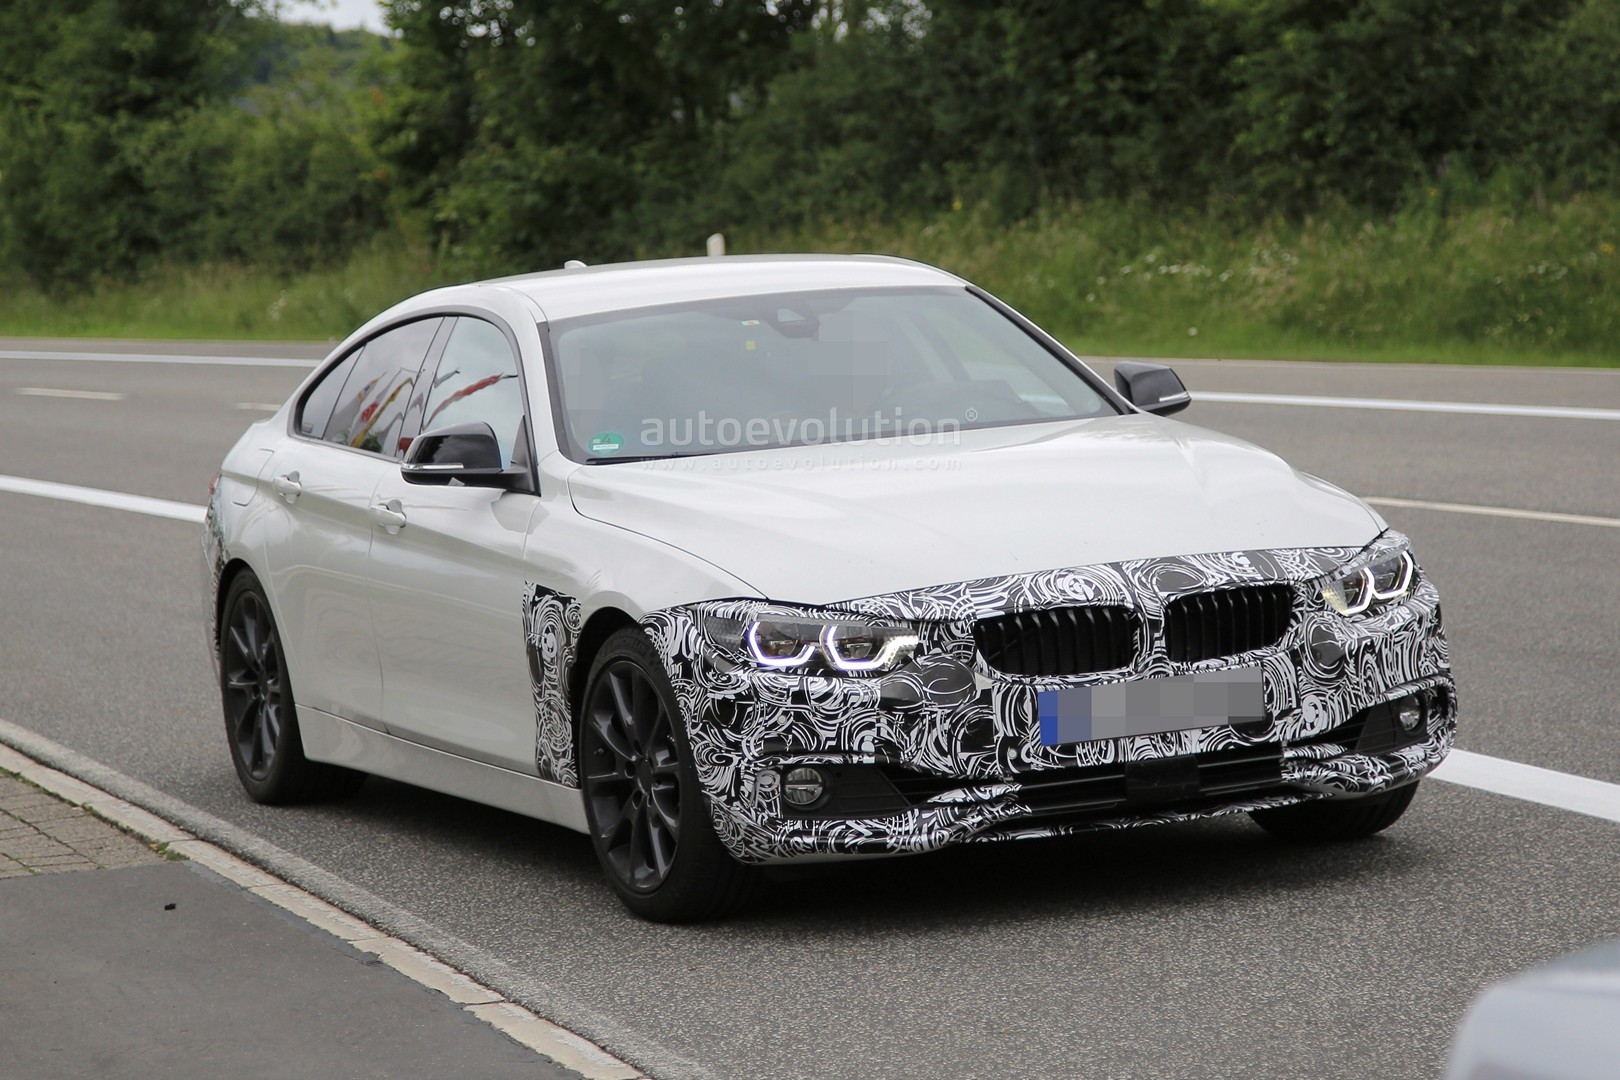 spyshots 2018 bmw 4 series gran coupe facelift has 7 series headlights autoevolution. Black Bedroom Furniture Sets. Home Design Ideas